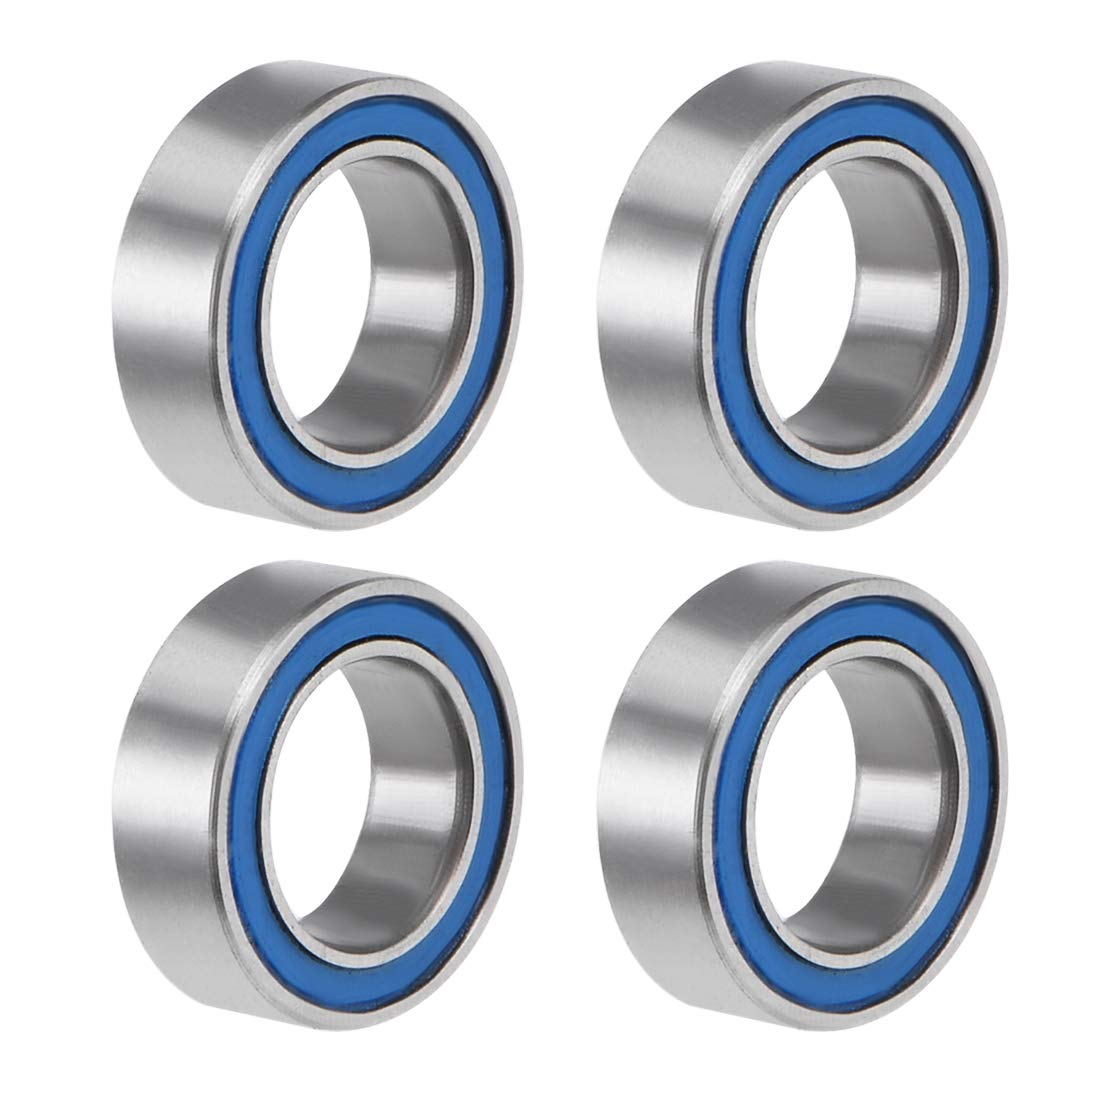 uxcell MR85-2RS Deep Groove Ball Bearing 5x8x2.5mm Double Sealed ABEC-3 Bearings 4-Pack